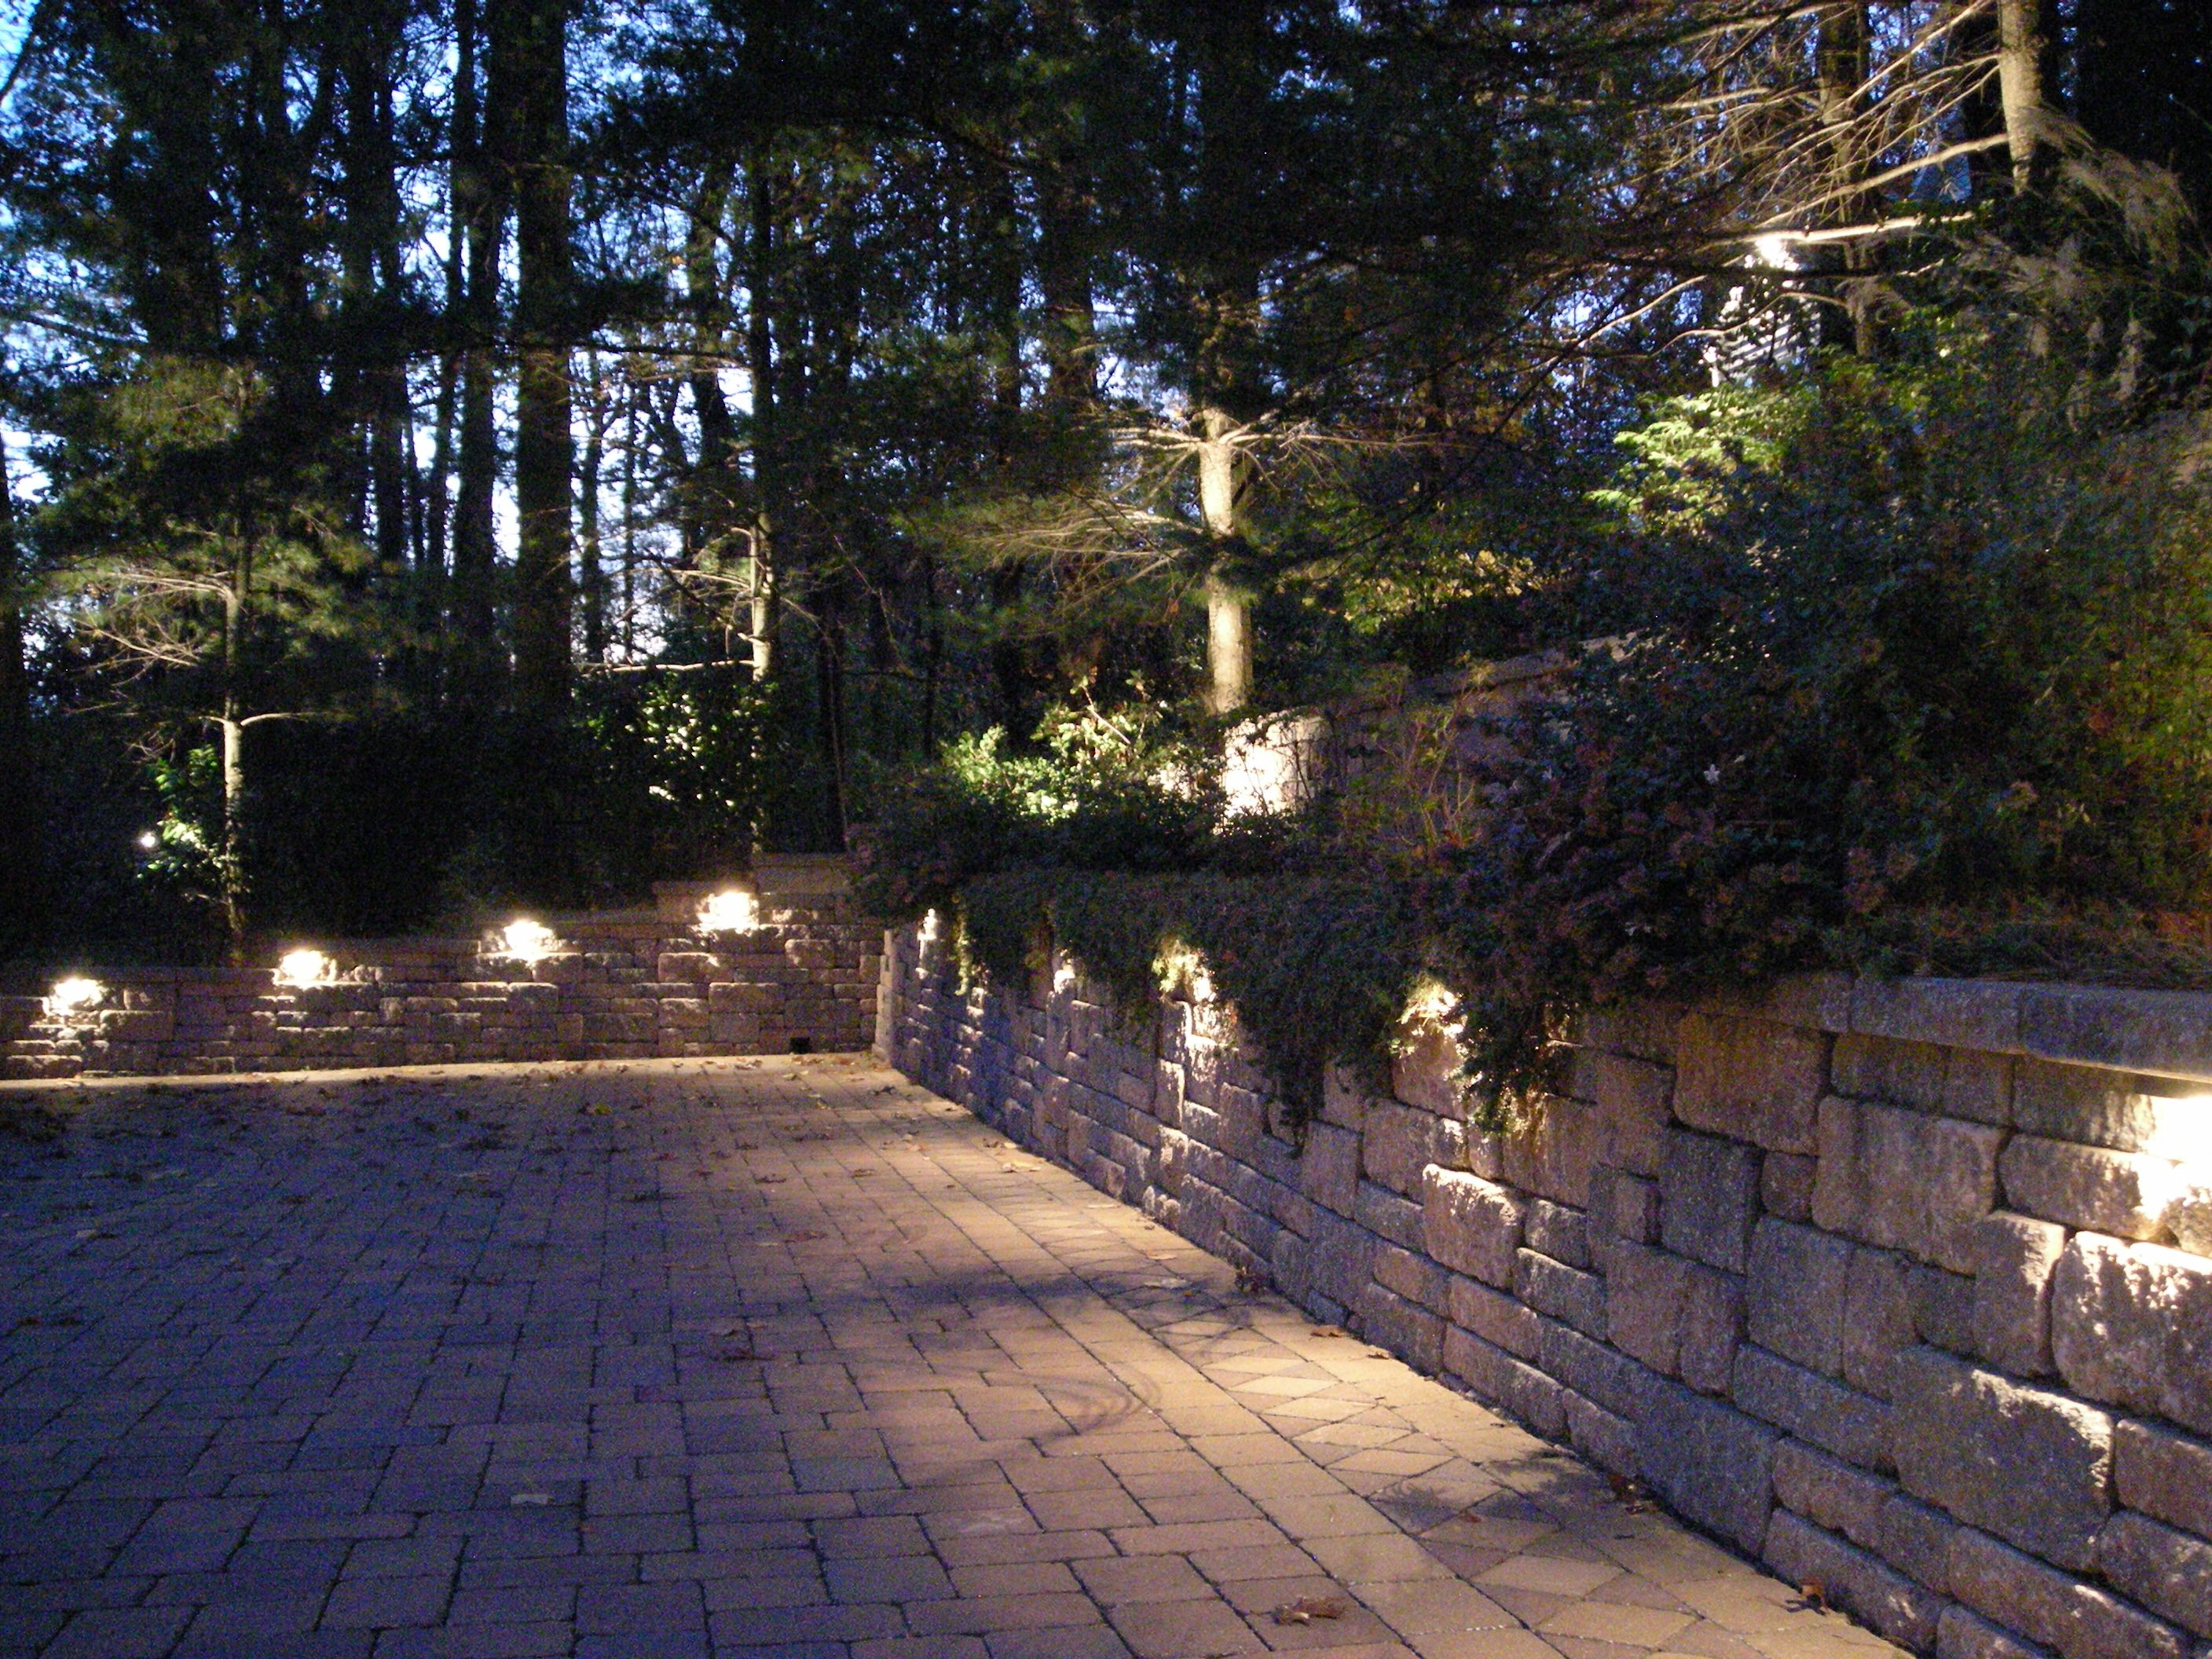 17 Best images about Landscape/Hardscape Lighting Solutions on Pinterest |  Outdoor living, Patio and Diagram design